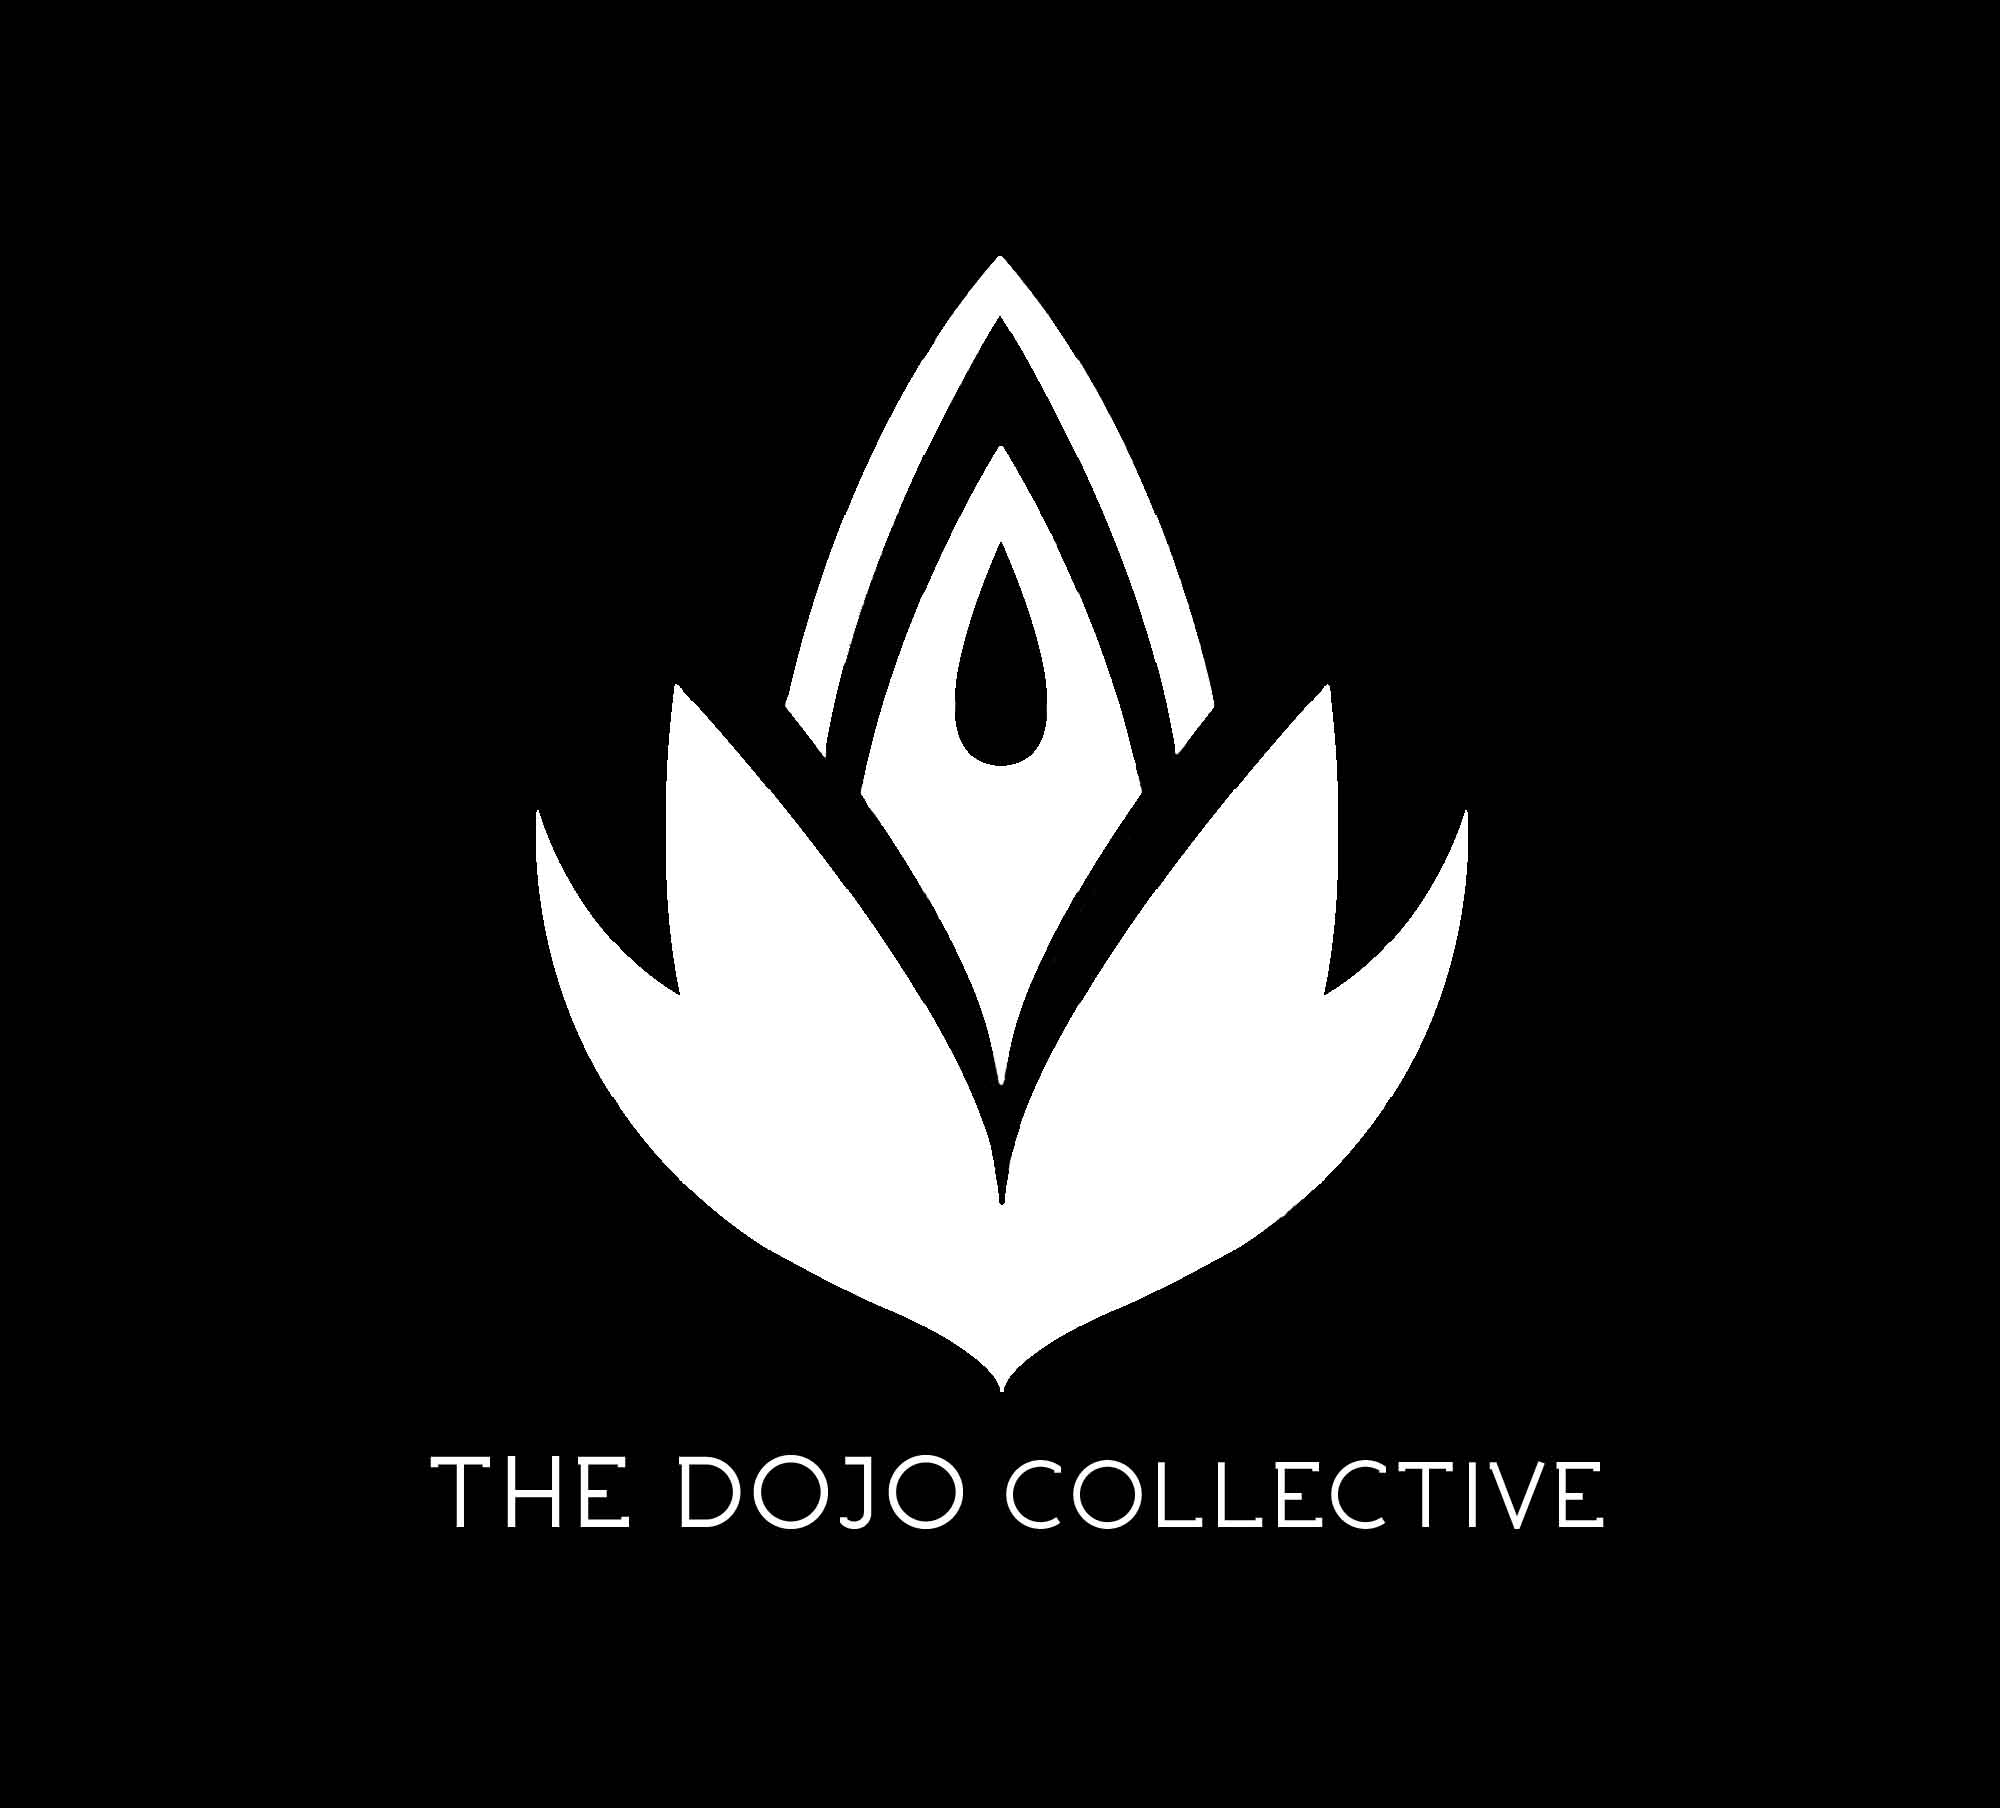 The Dojo Collective